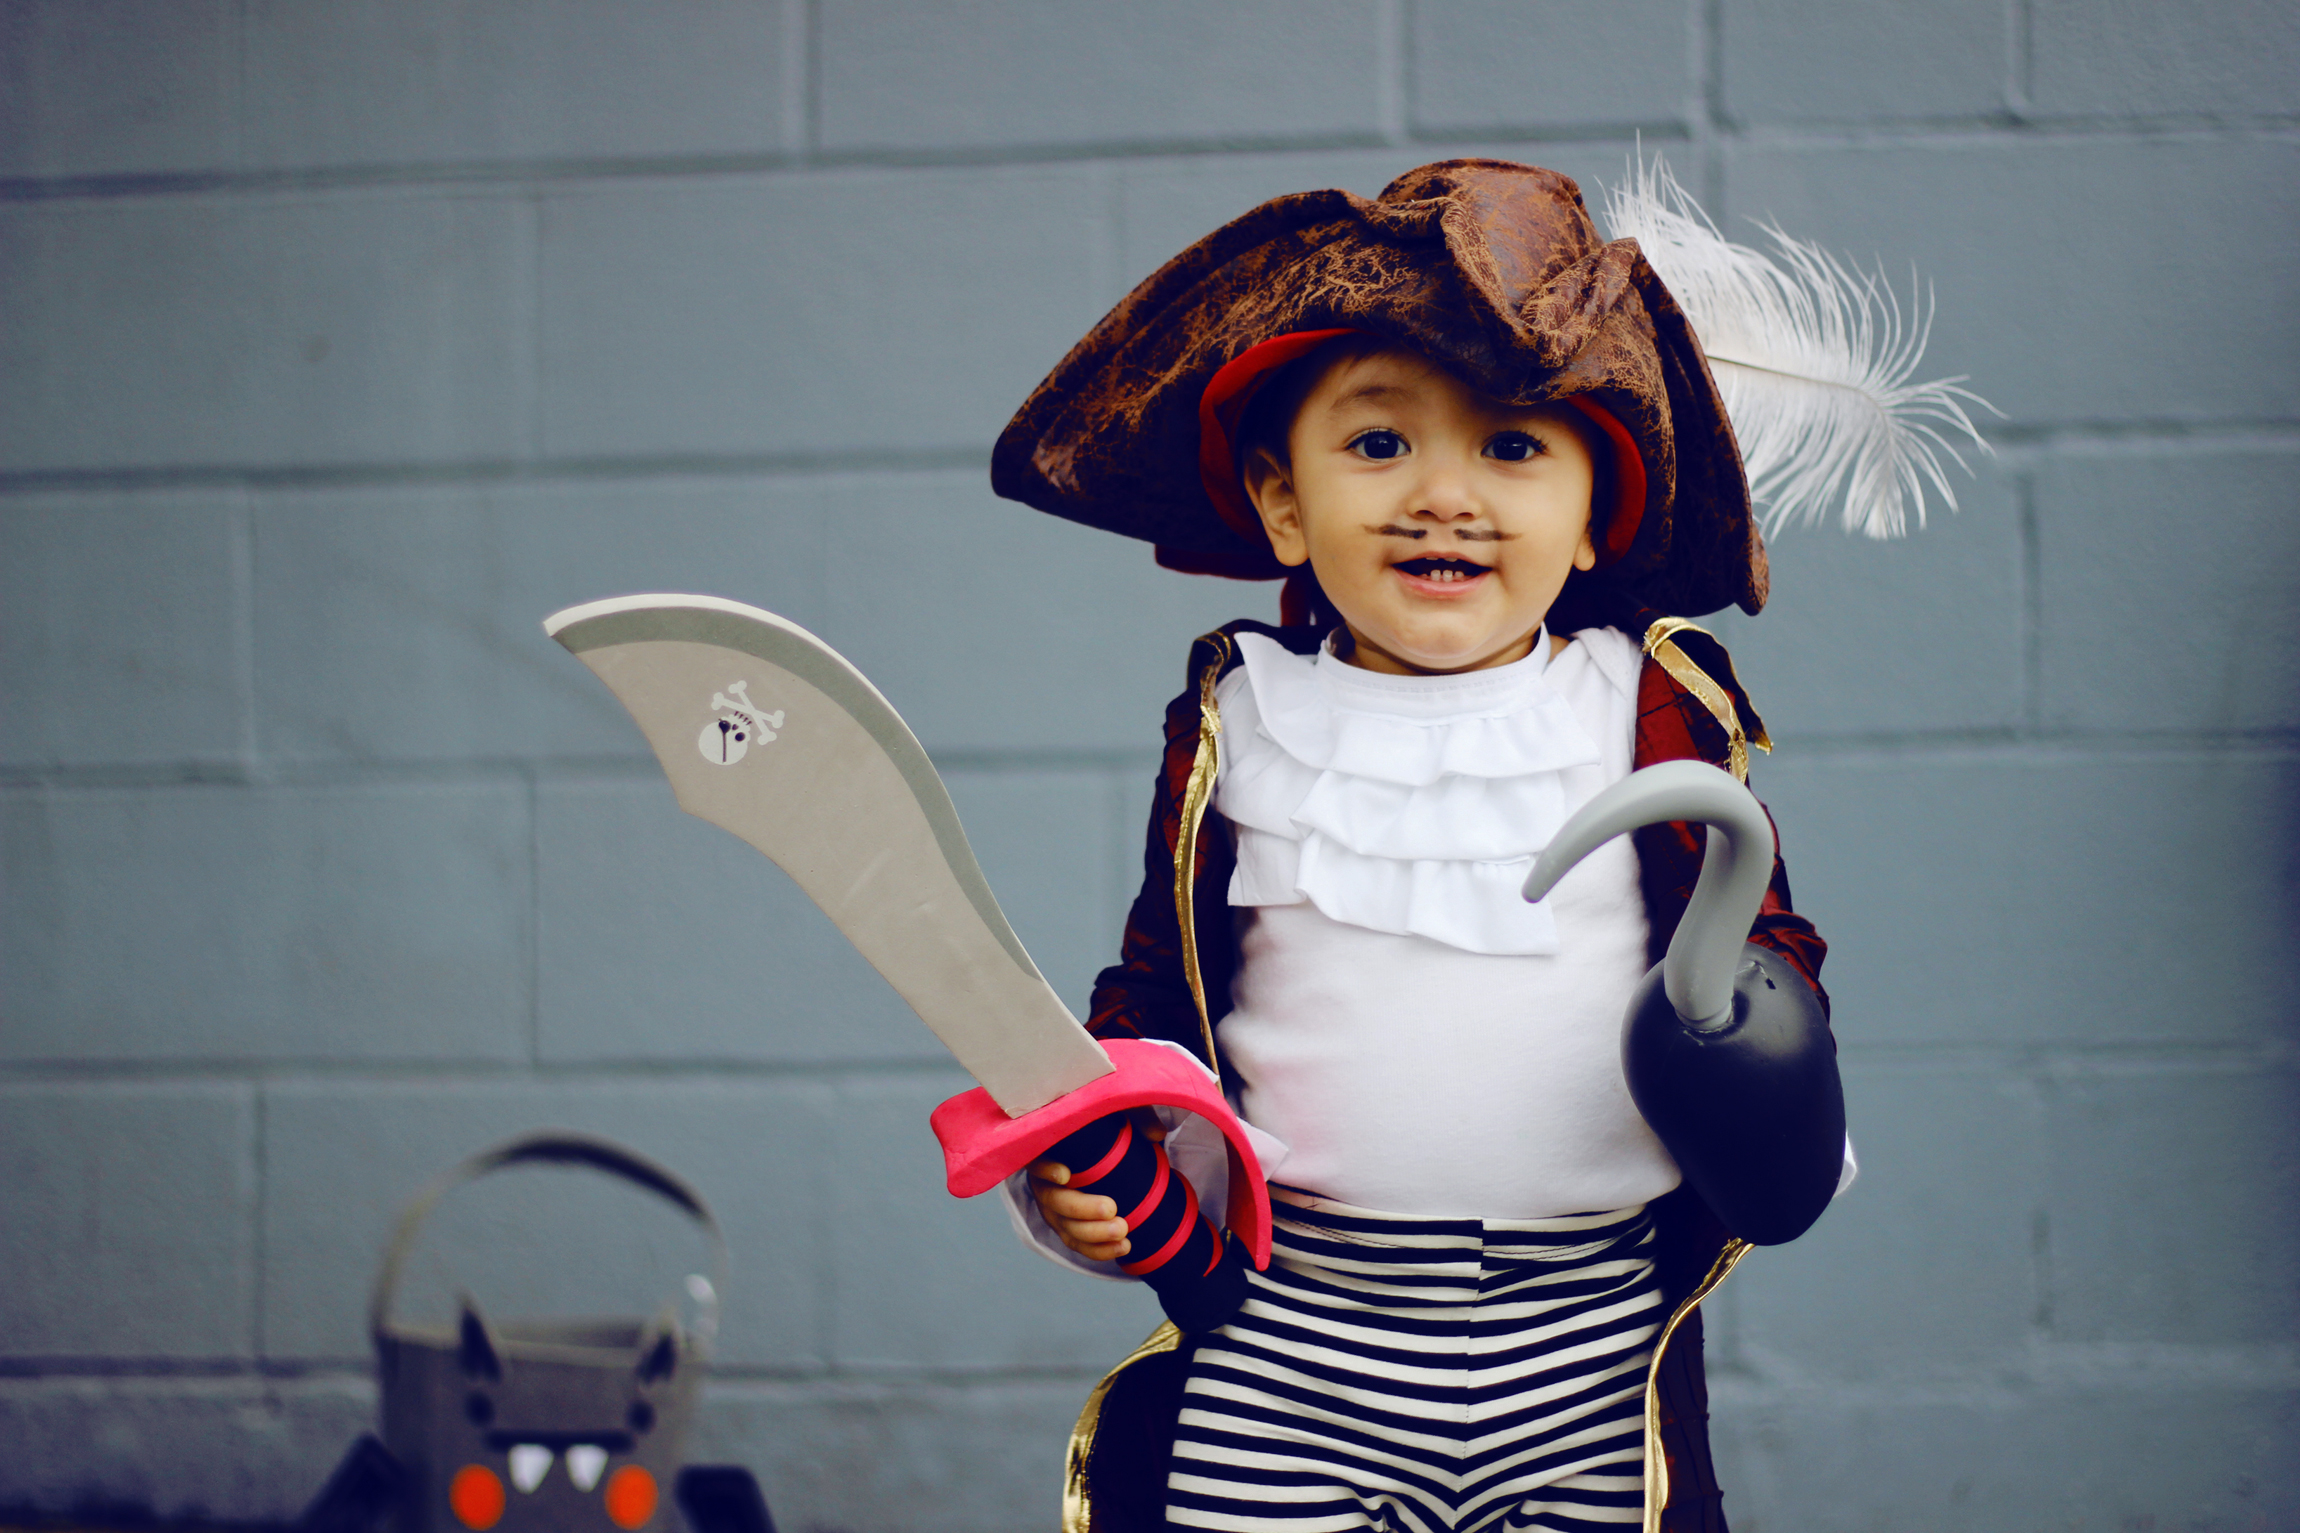 DIY Projects - KID COSTUMES: CAPTAIN HOOK + CAPTAIN JAKE - All Kids Are Gifted